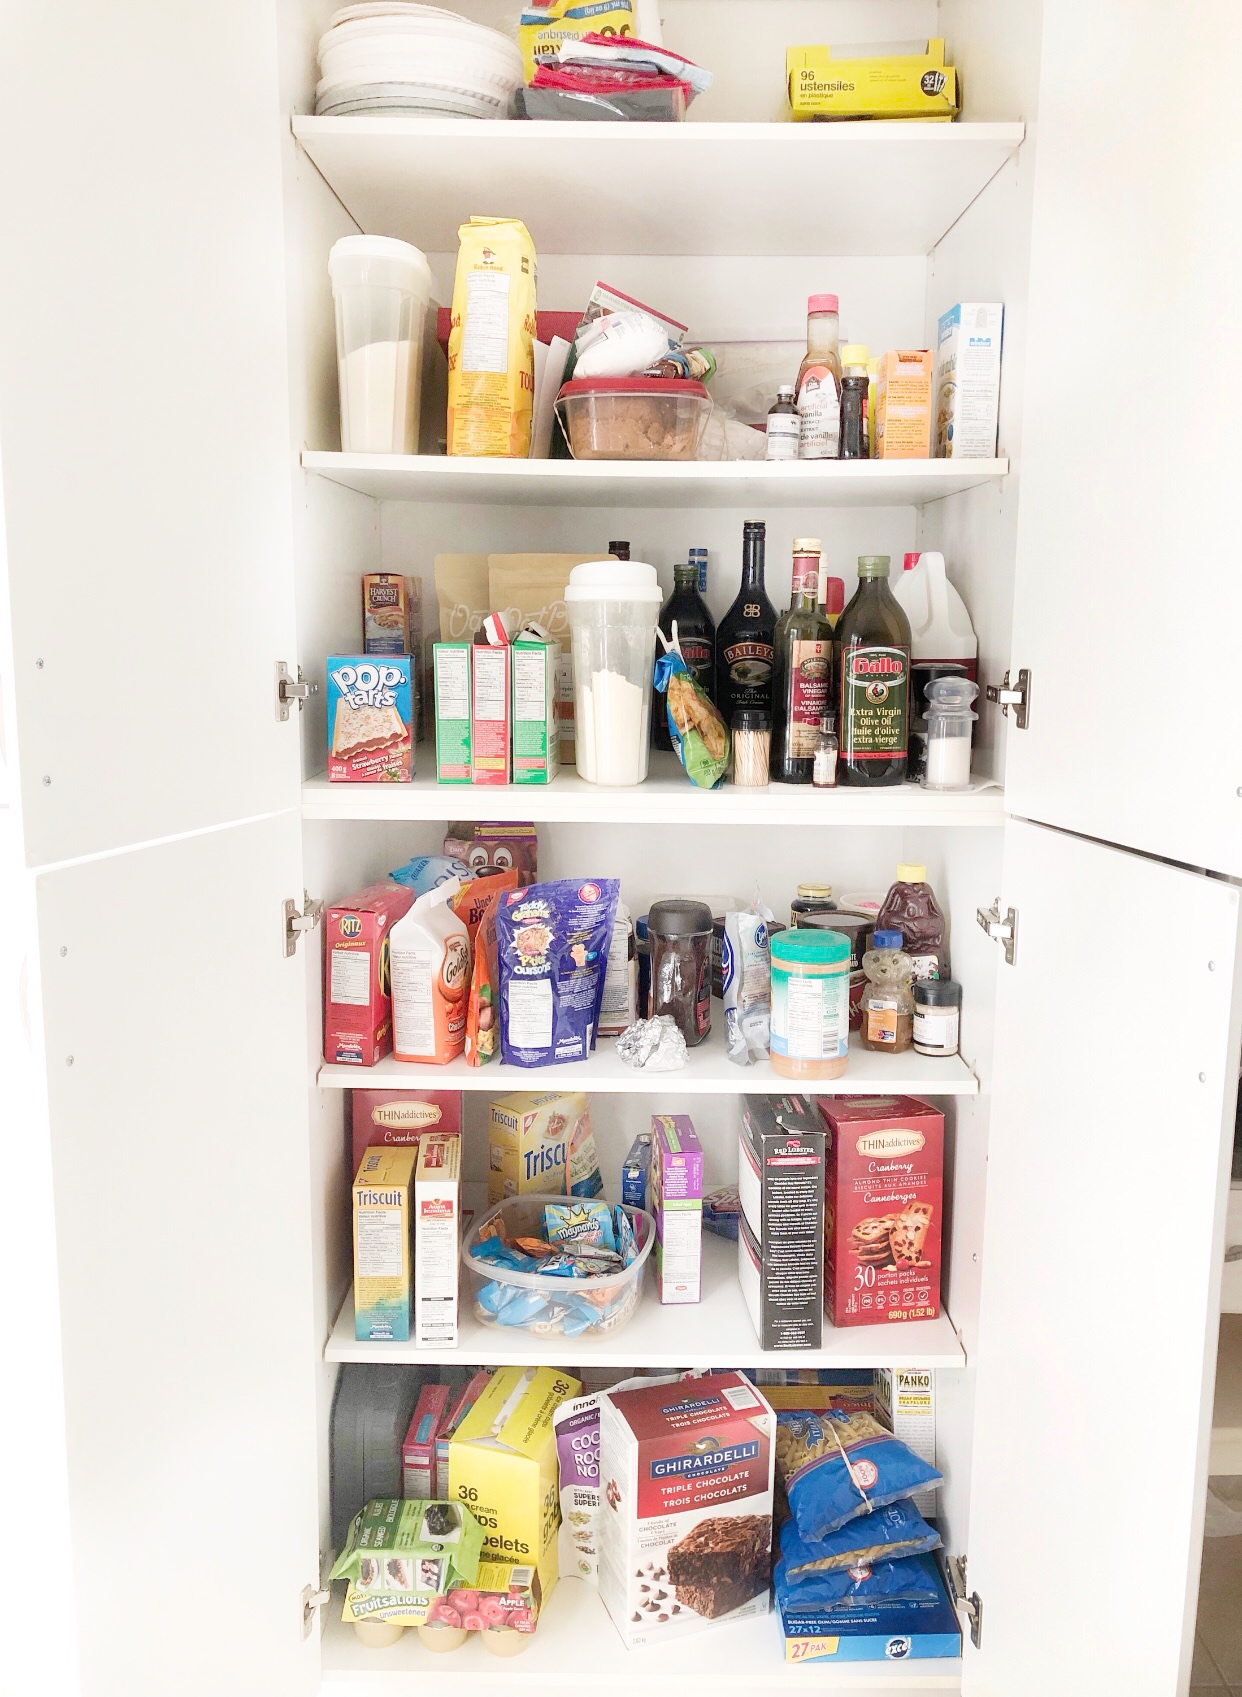 Kitchen Pantry Organization on Livin' Life with Style(Before)